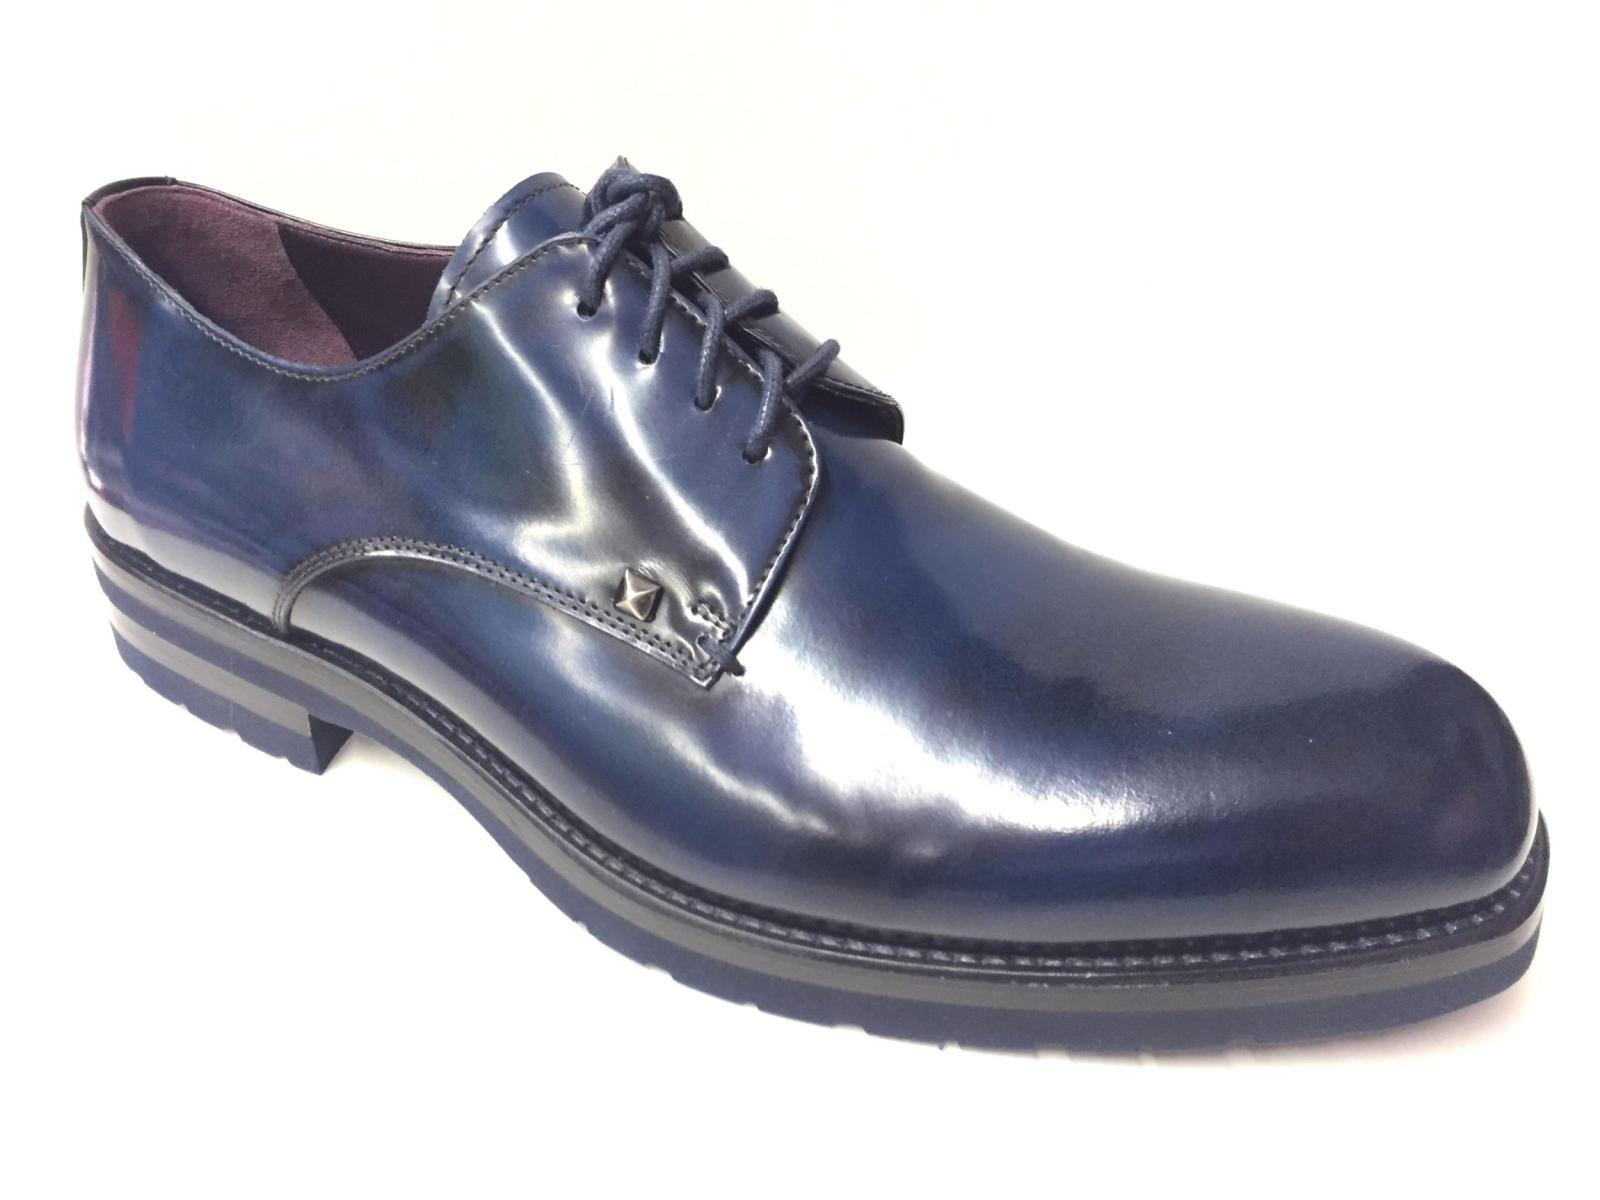 SCARPE CASUAL DERBY UOMO MIRAGE 8705 PELLE BLU ORIGINALE AI NEW